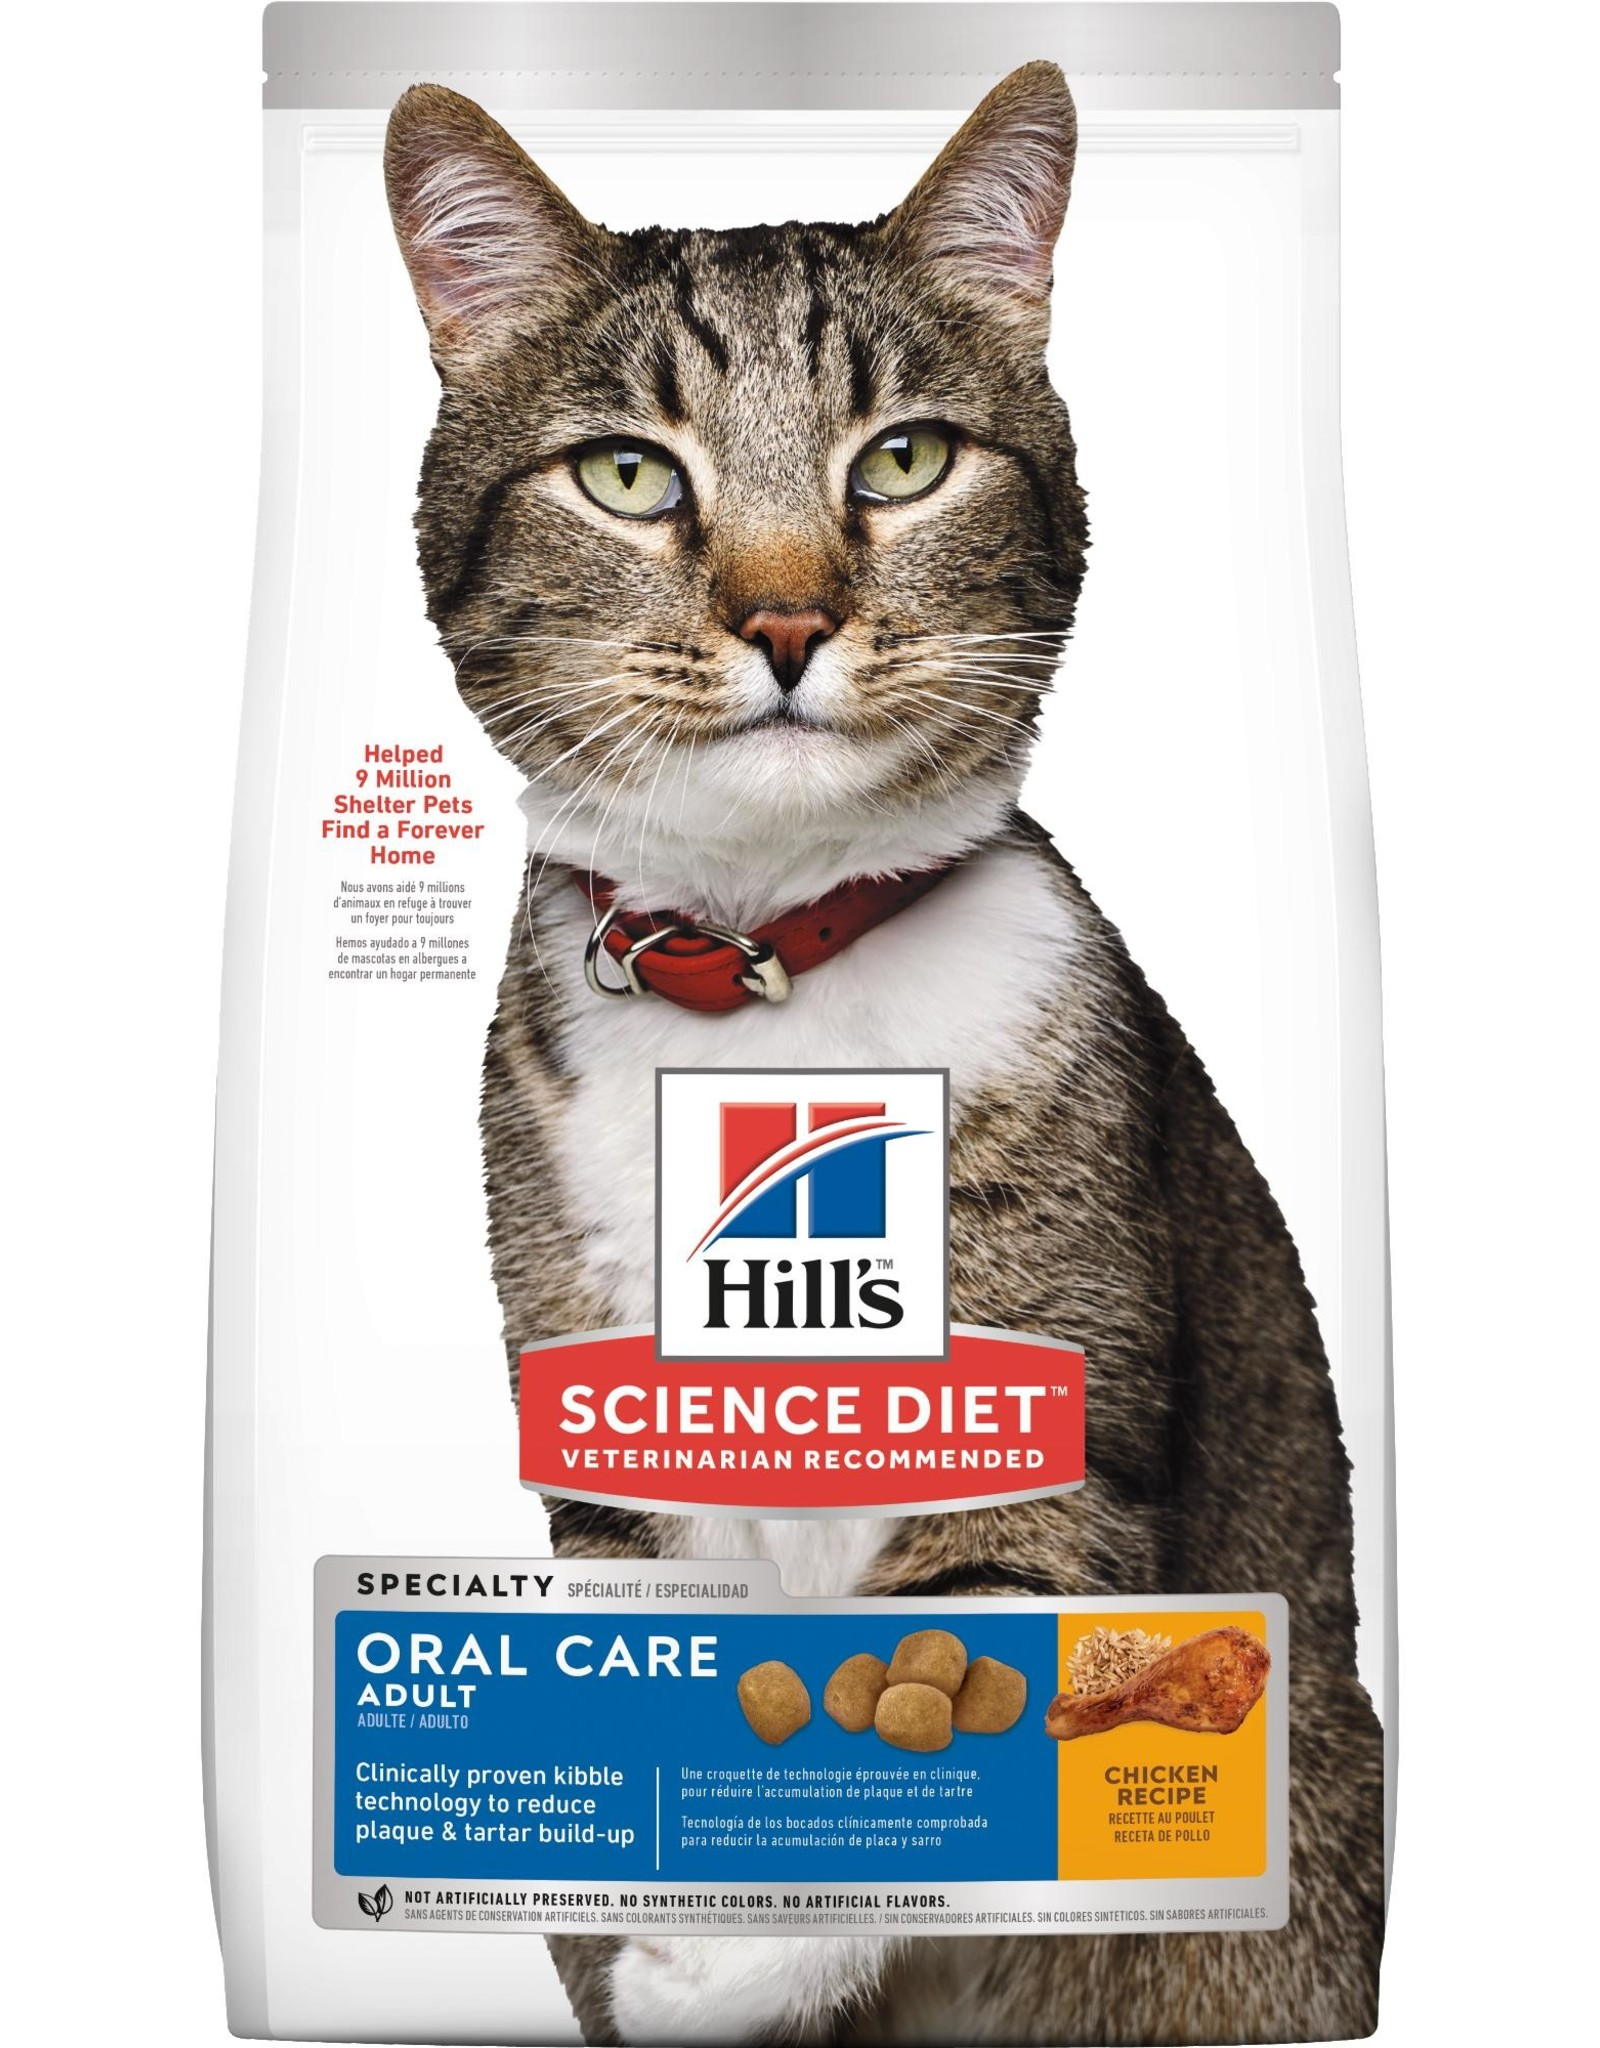 Hill's Science Diet Hill's Science Diet Feline Oral Care 7lb